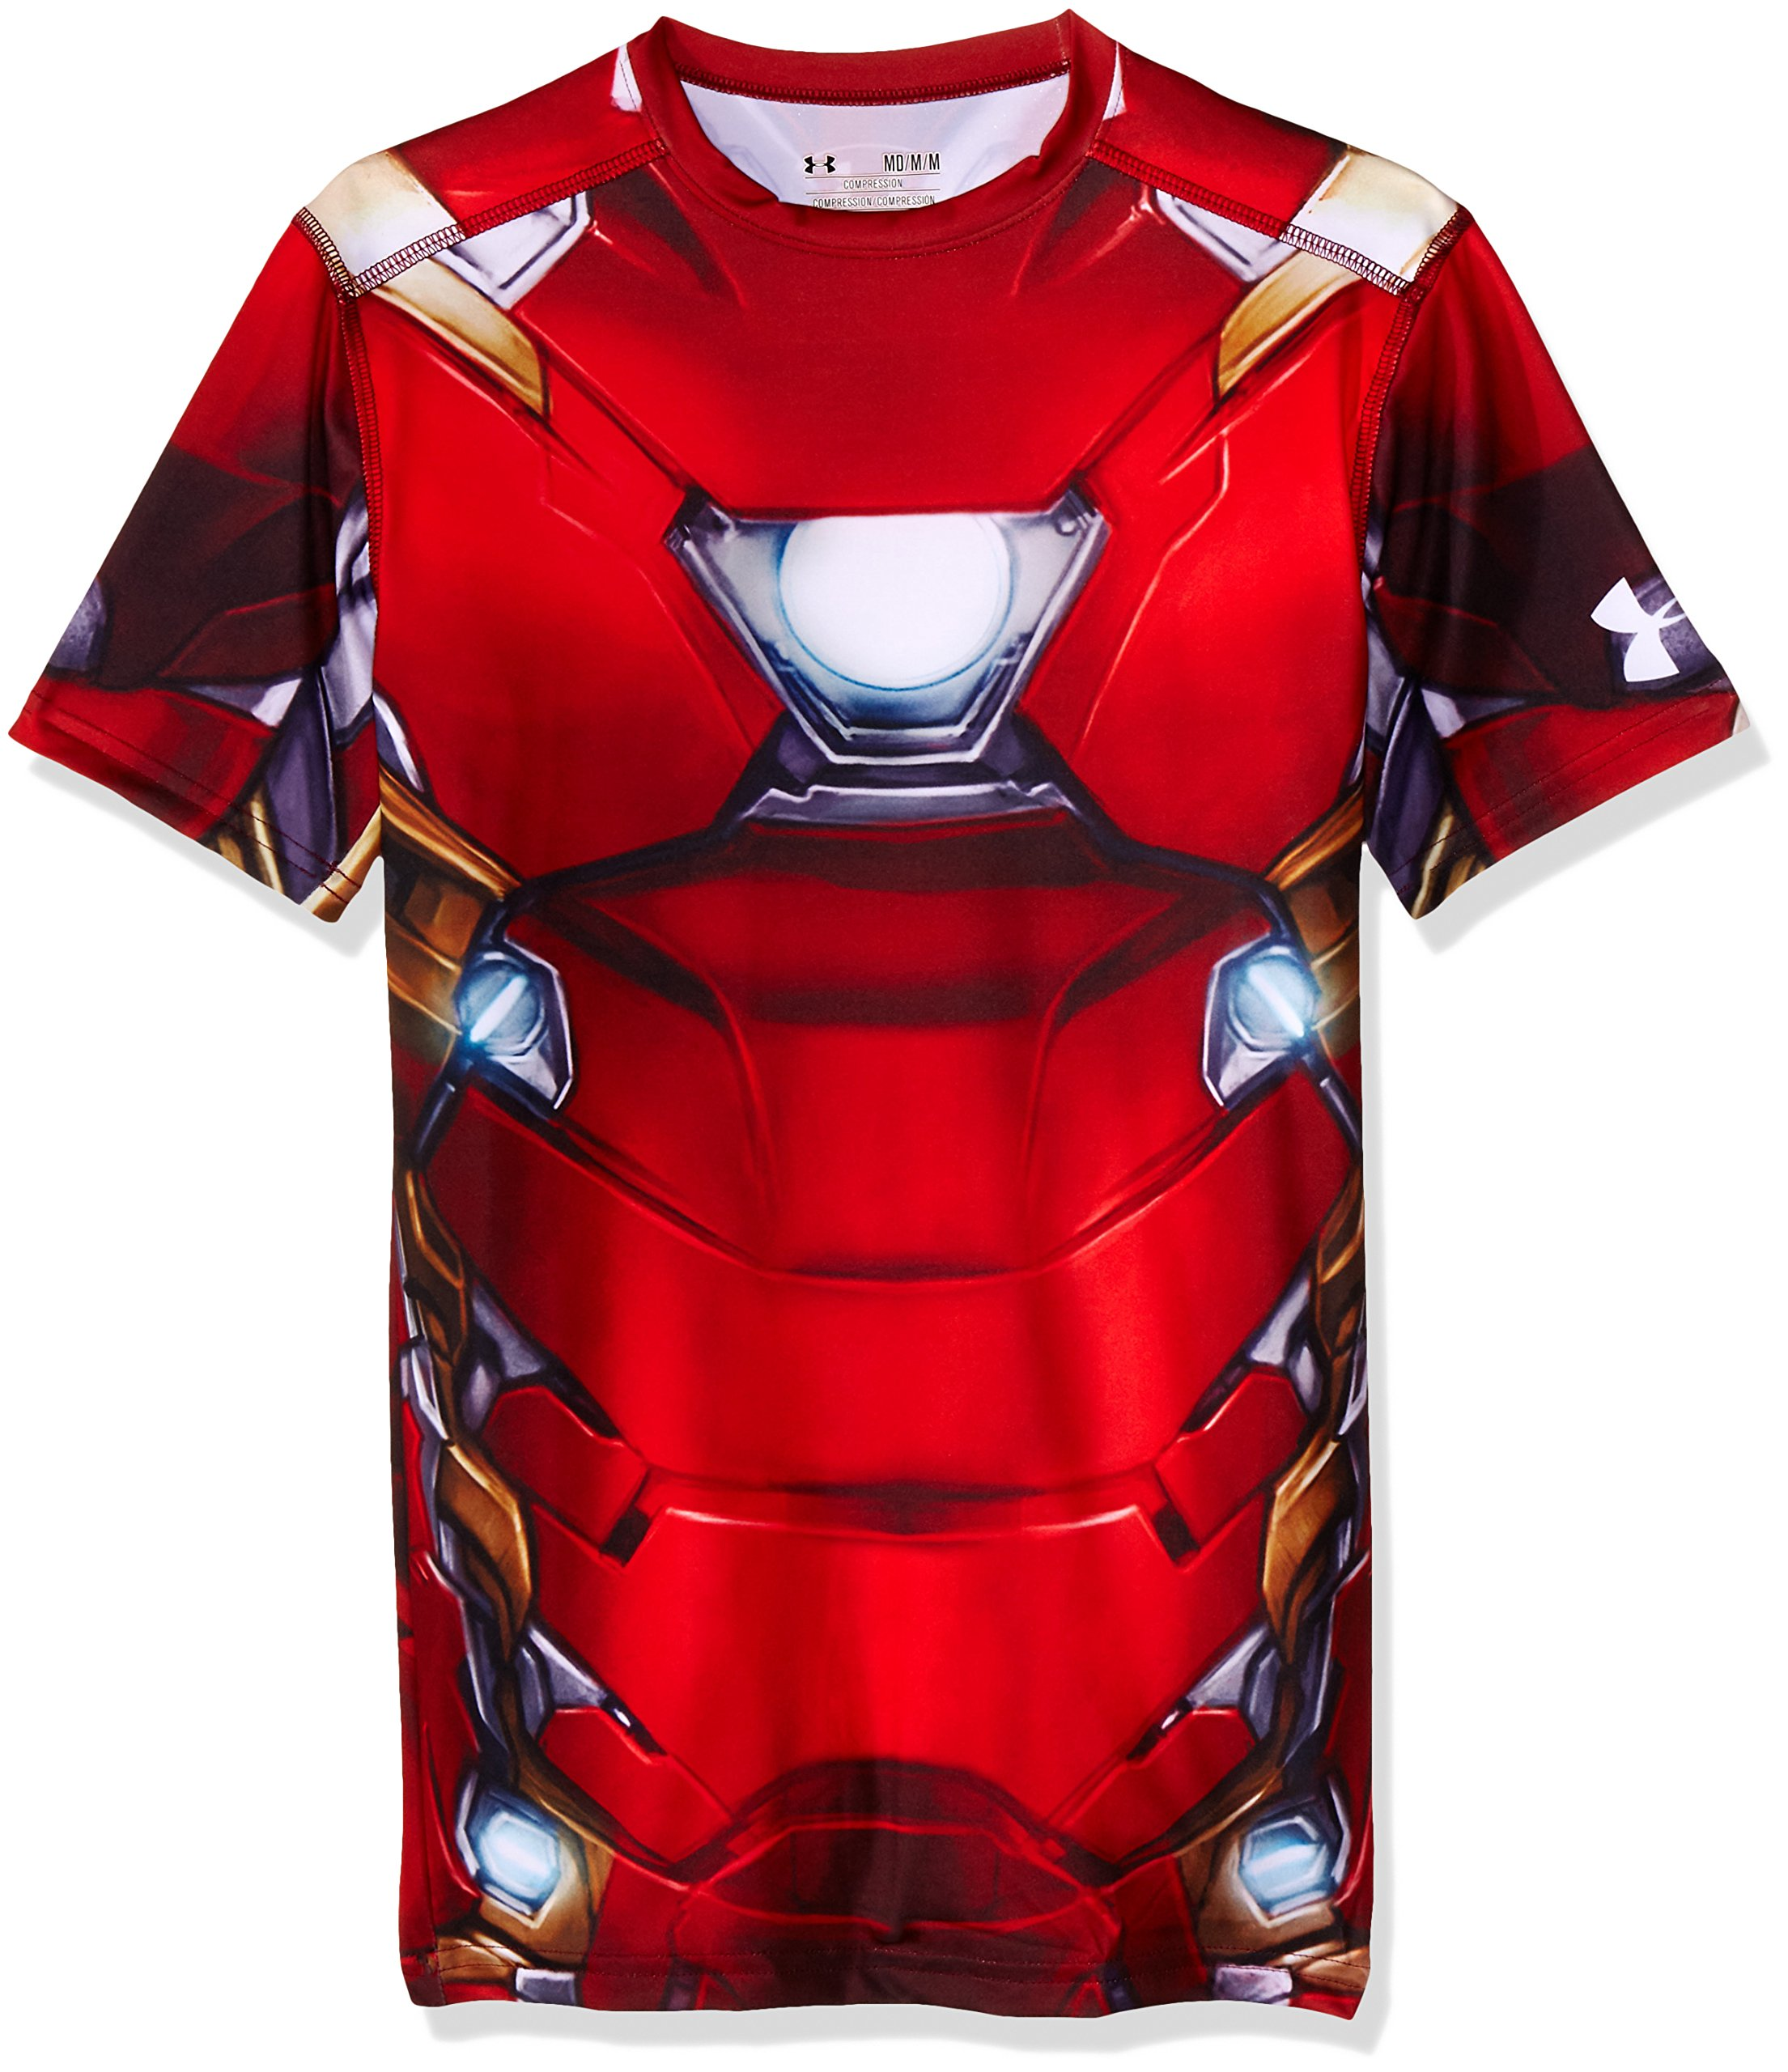 Under Armour Iron Man Alter Ego Compression T-Shirt - Small - Red